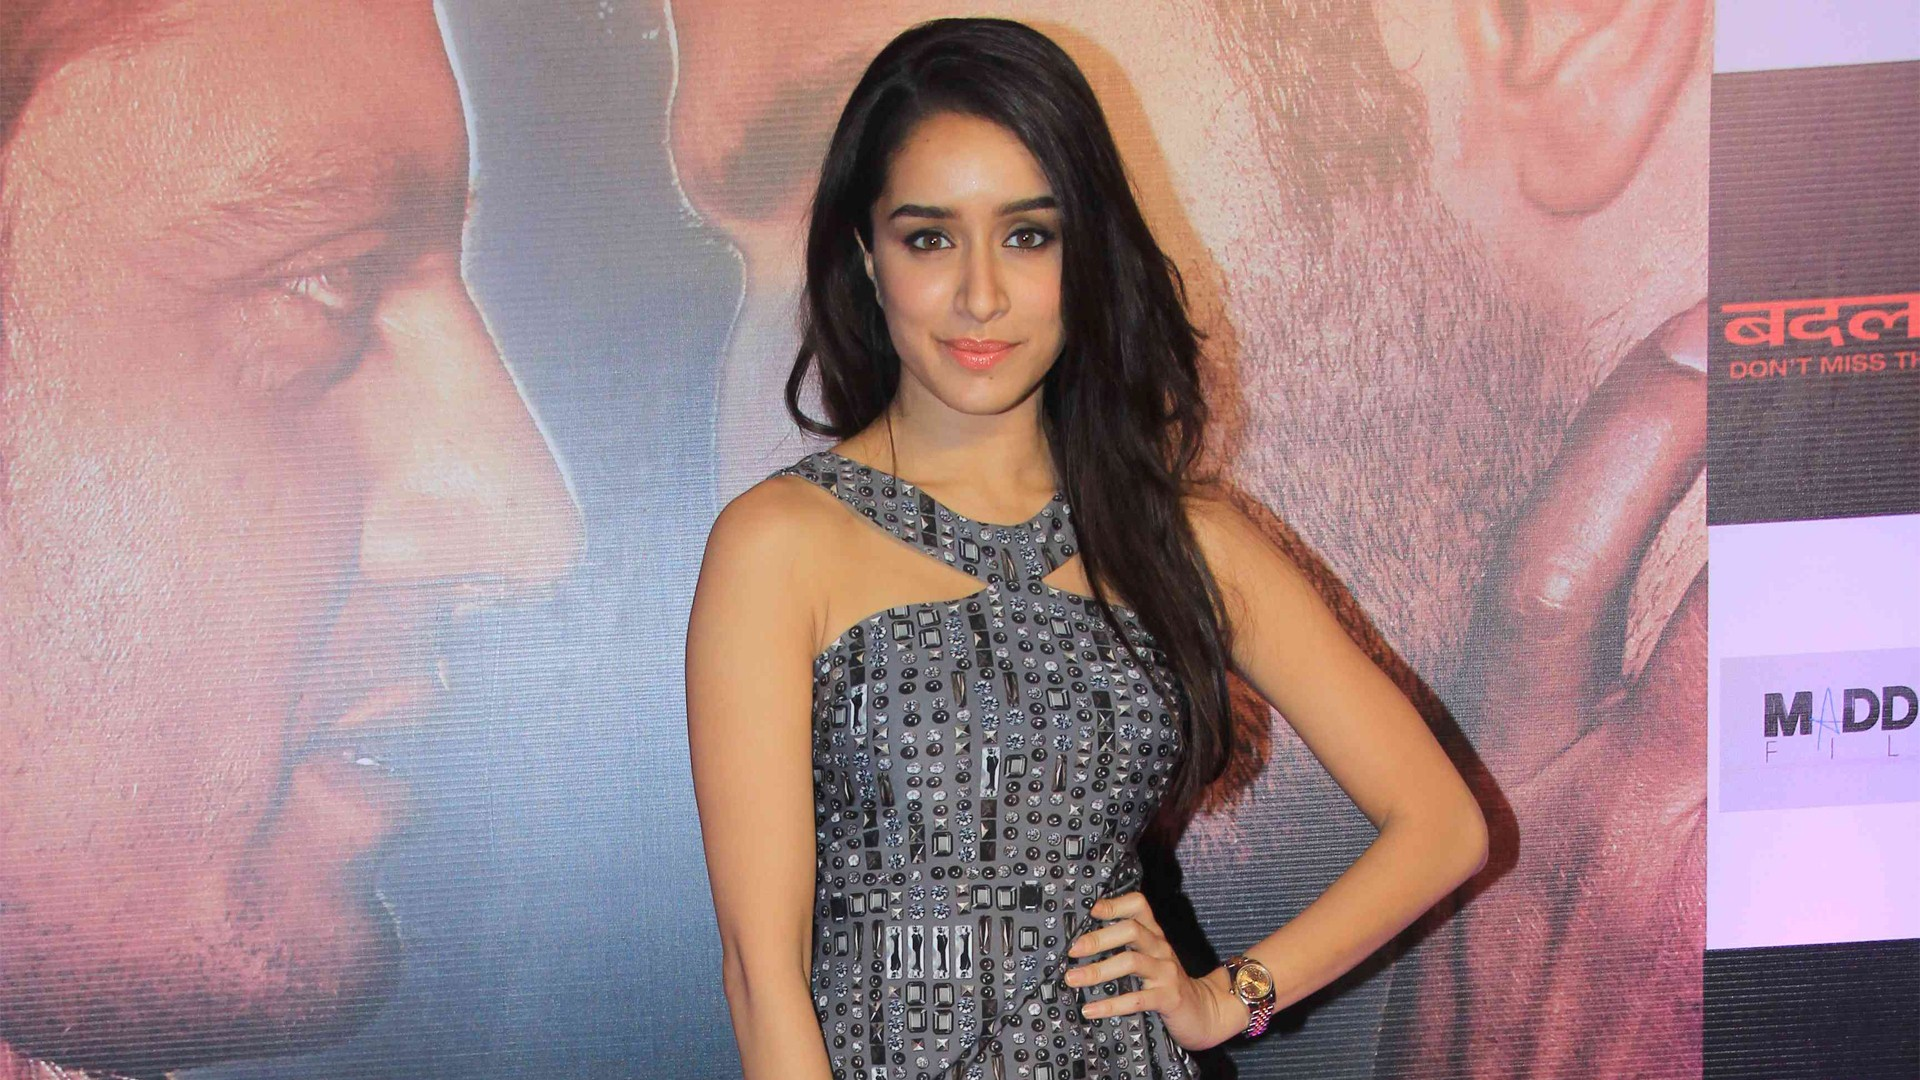 Shraddha Kapoor HD Wallpapers Images Free Download p 1920x1080